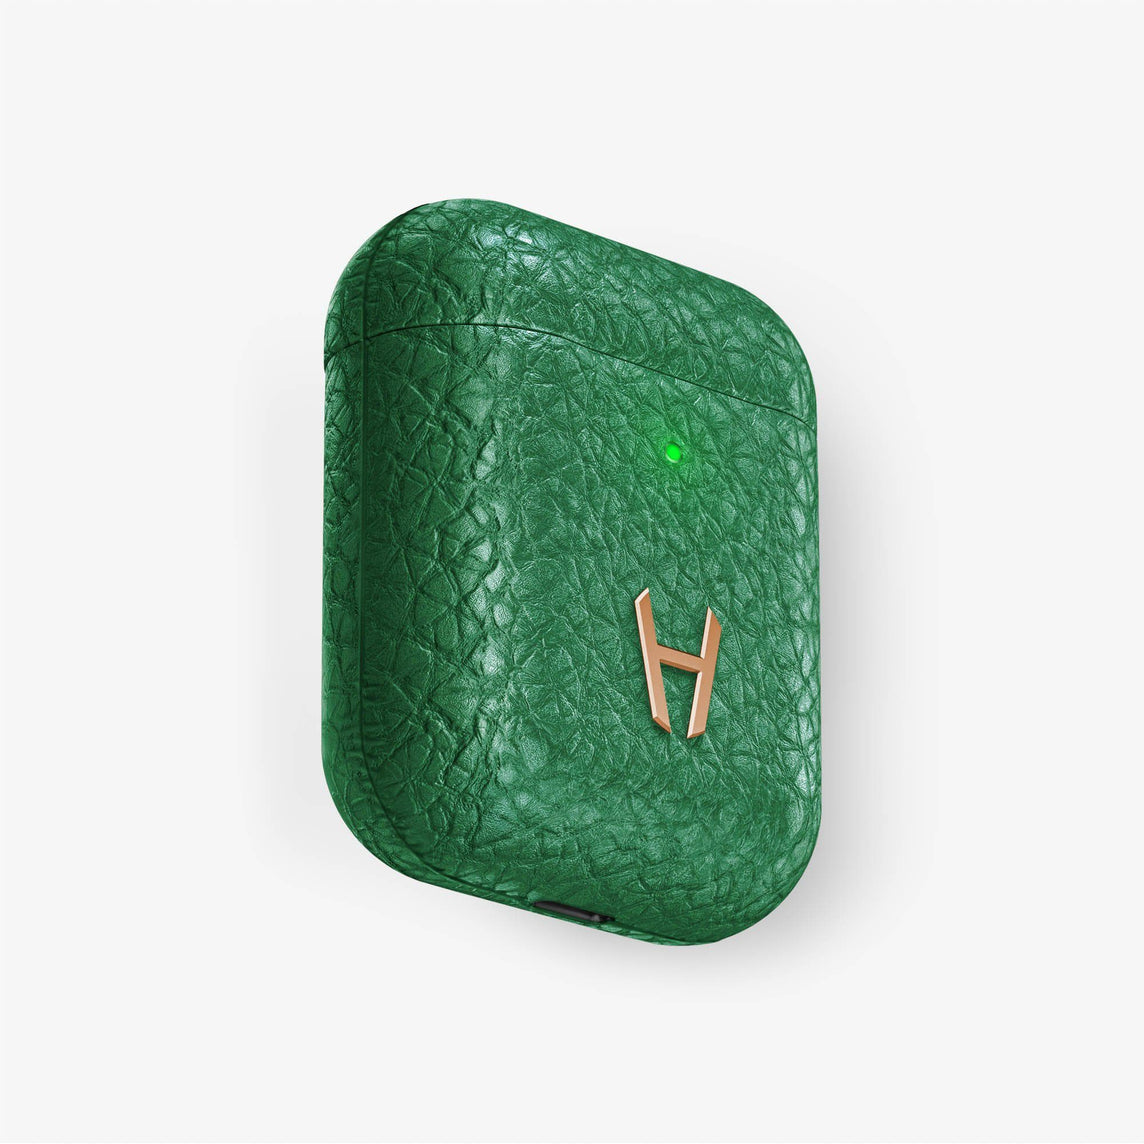 Calfskin [Hadoro AirPods] [model:airpods-with-w-charging] [colour:green] [finishing:rose-gold] without-personalization